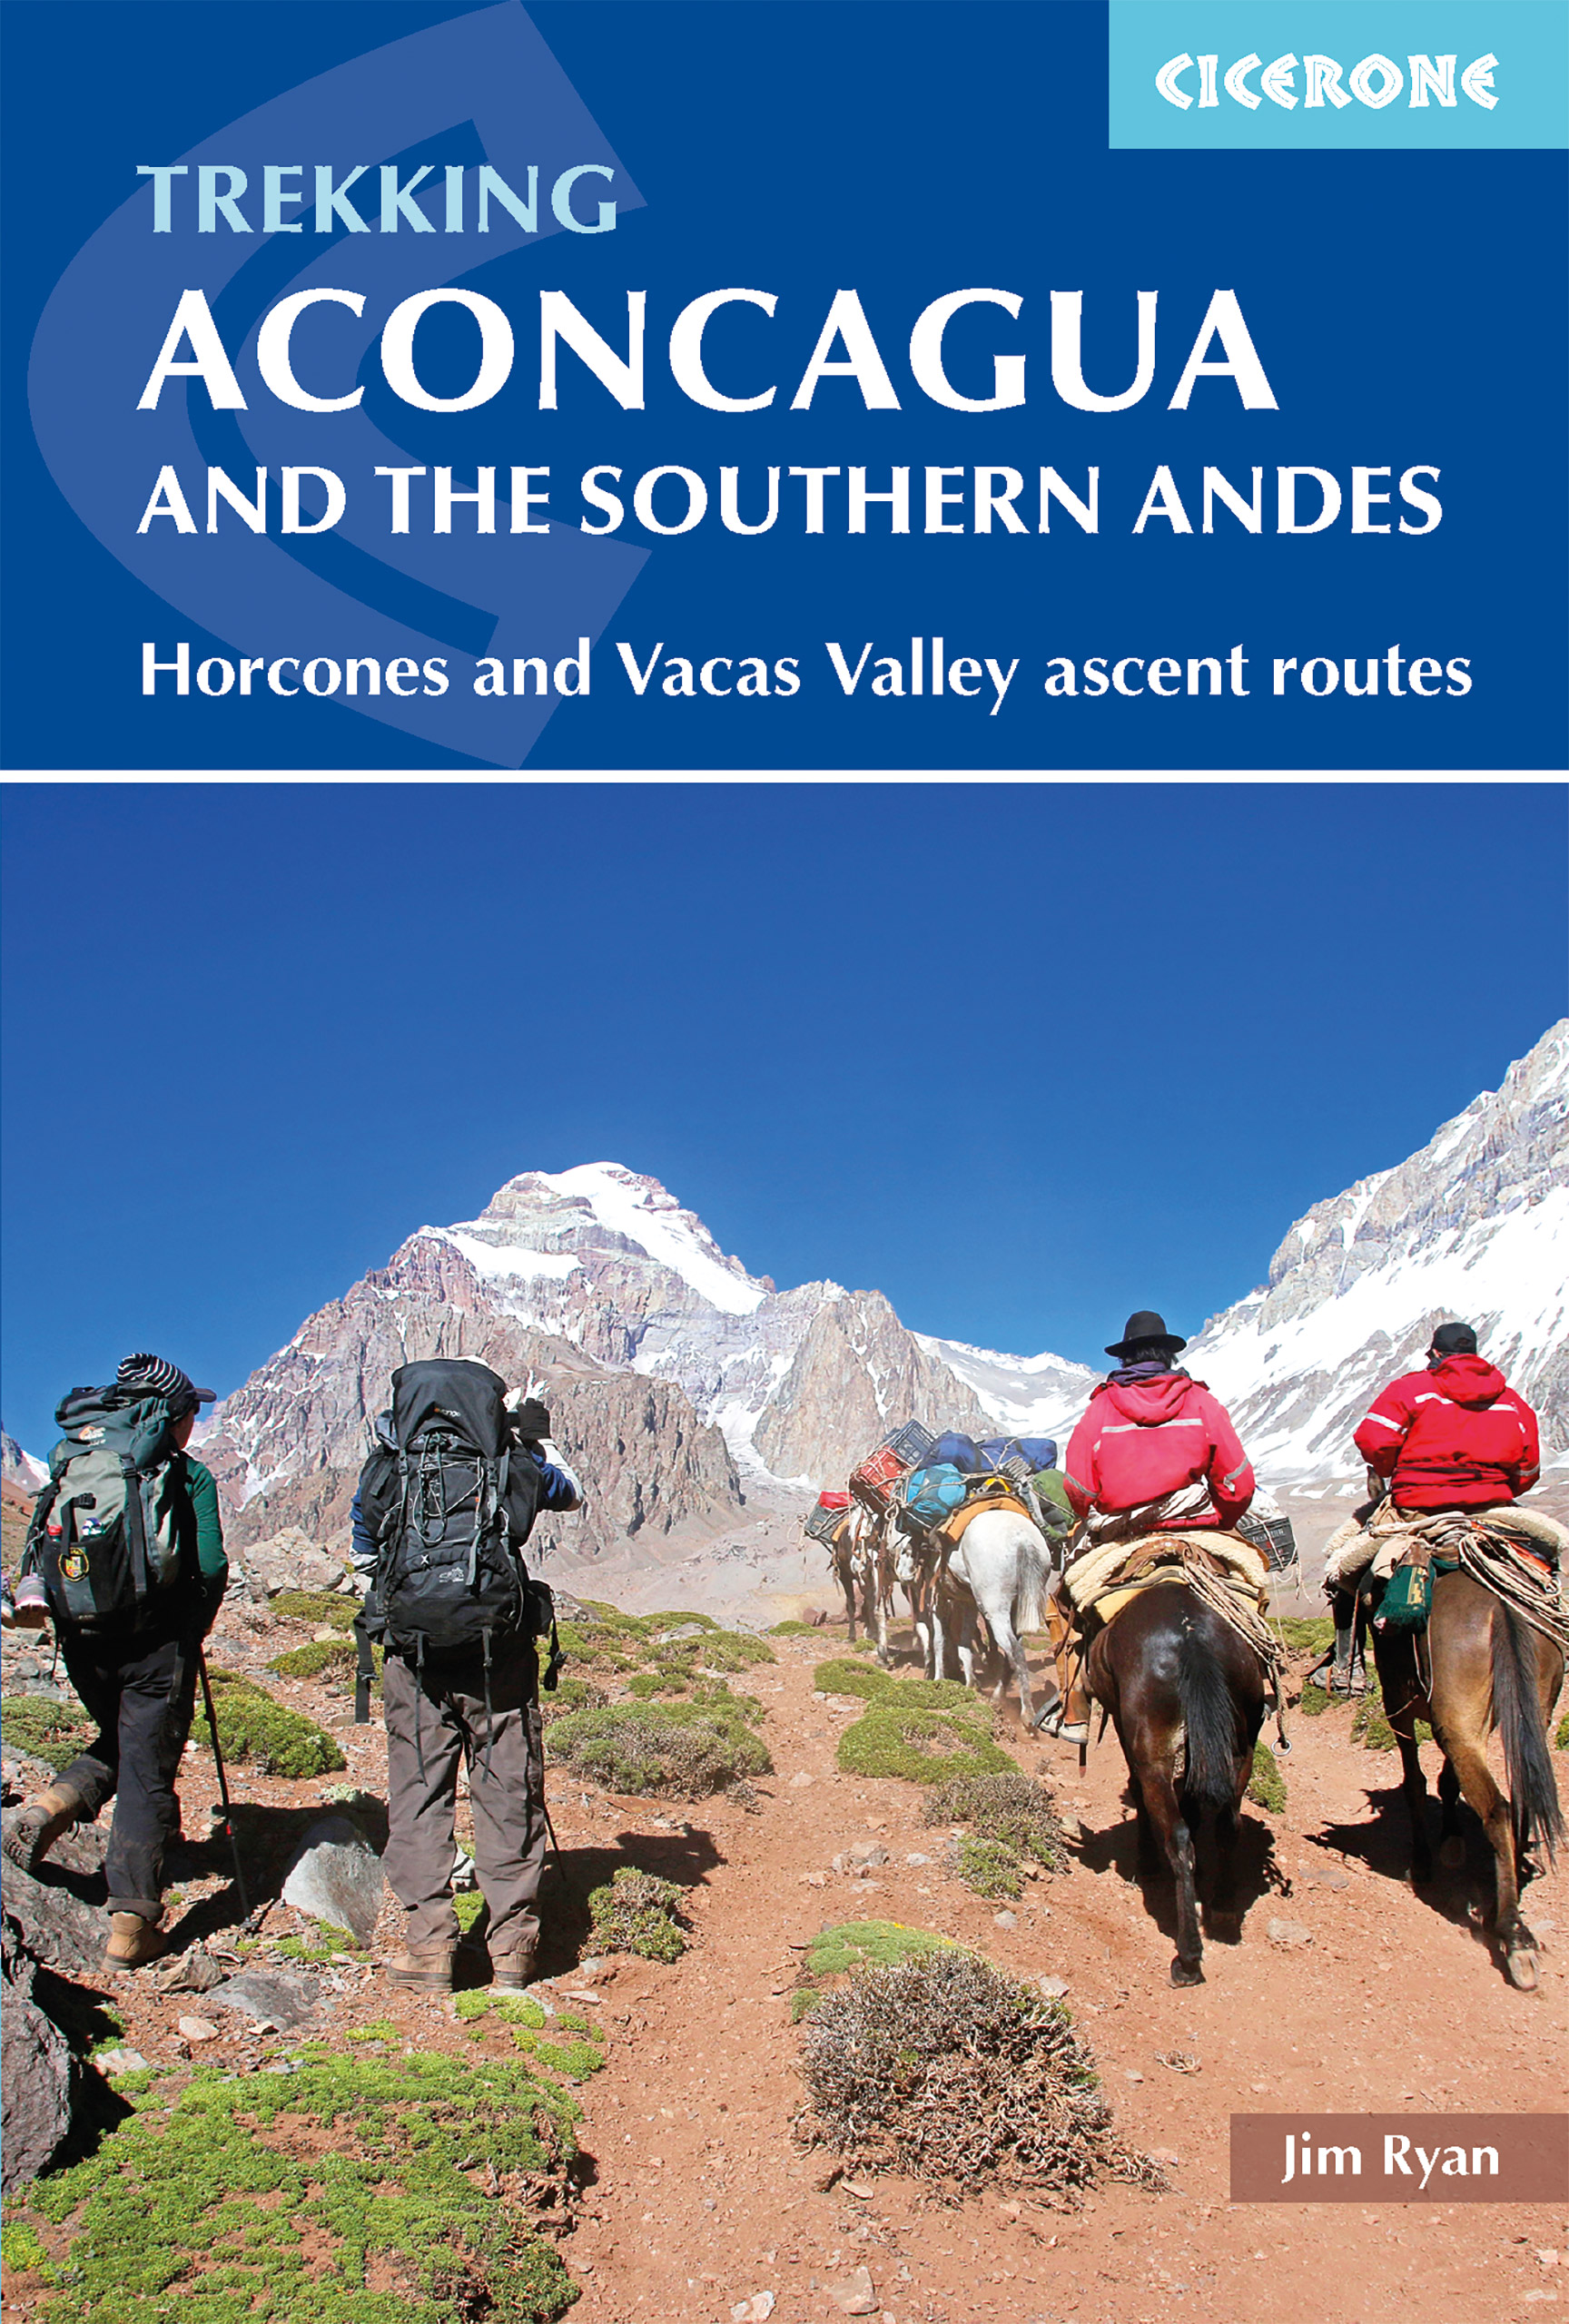 Trekking Aconcagua and the Southern Andes